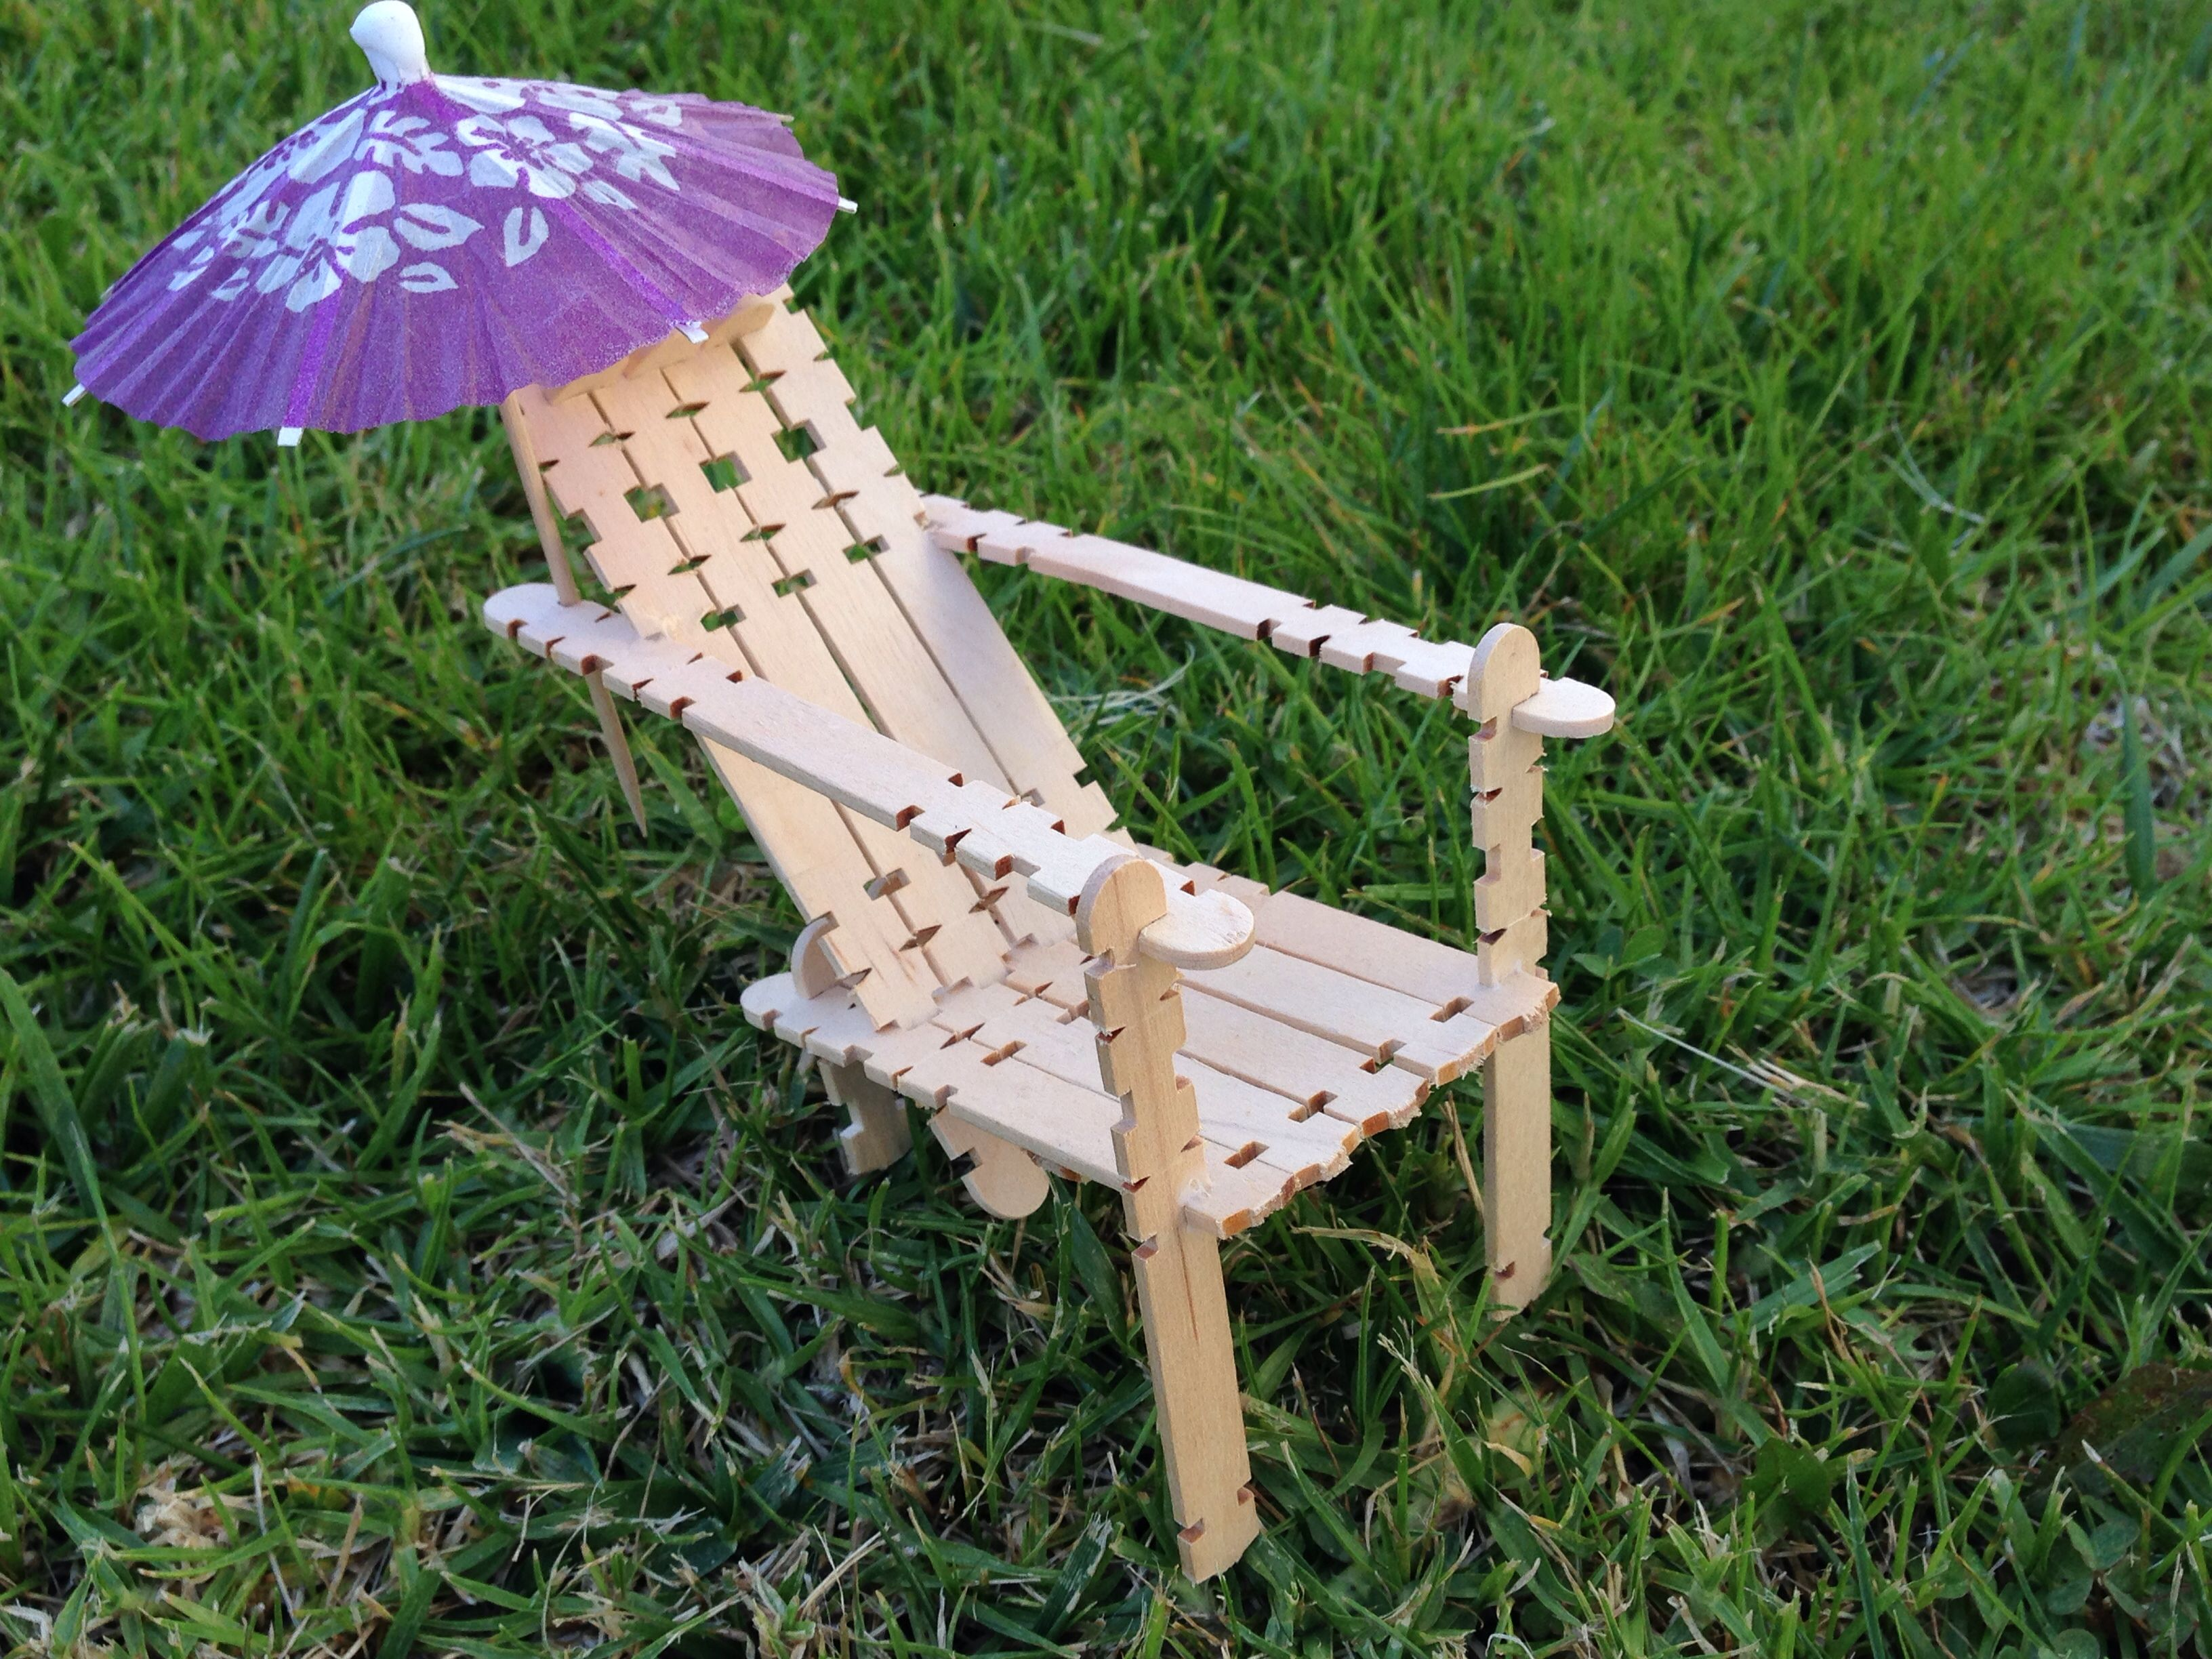 Beach Chair This Cute Beach Chair Is Made With Popsicle Sticks. I Got The  Kind